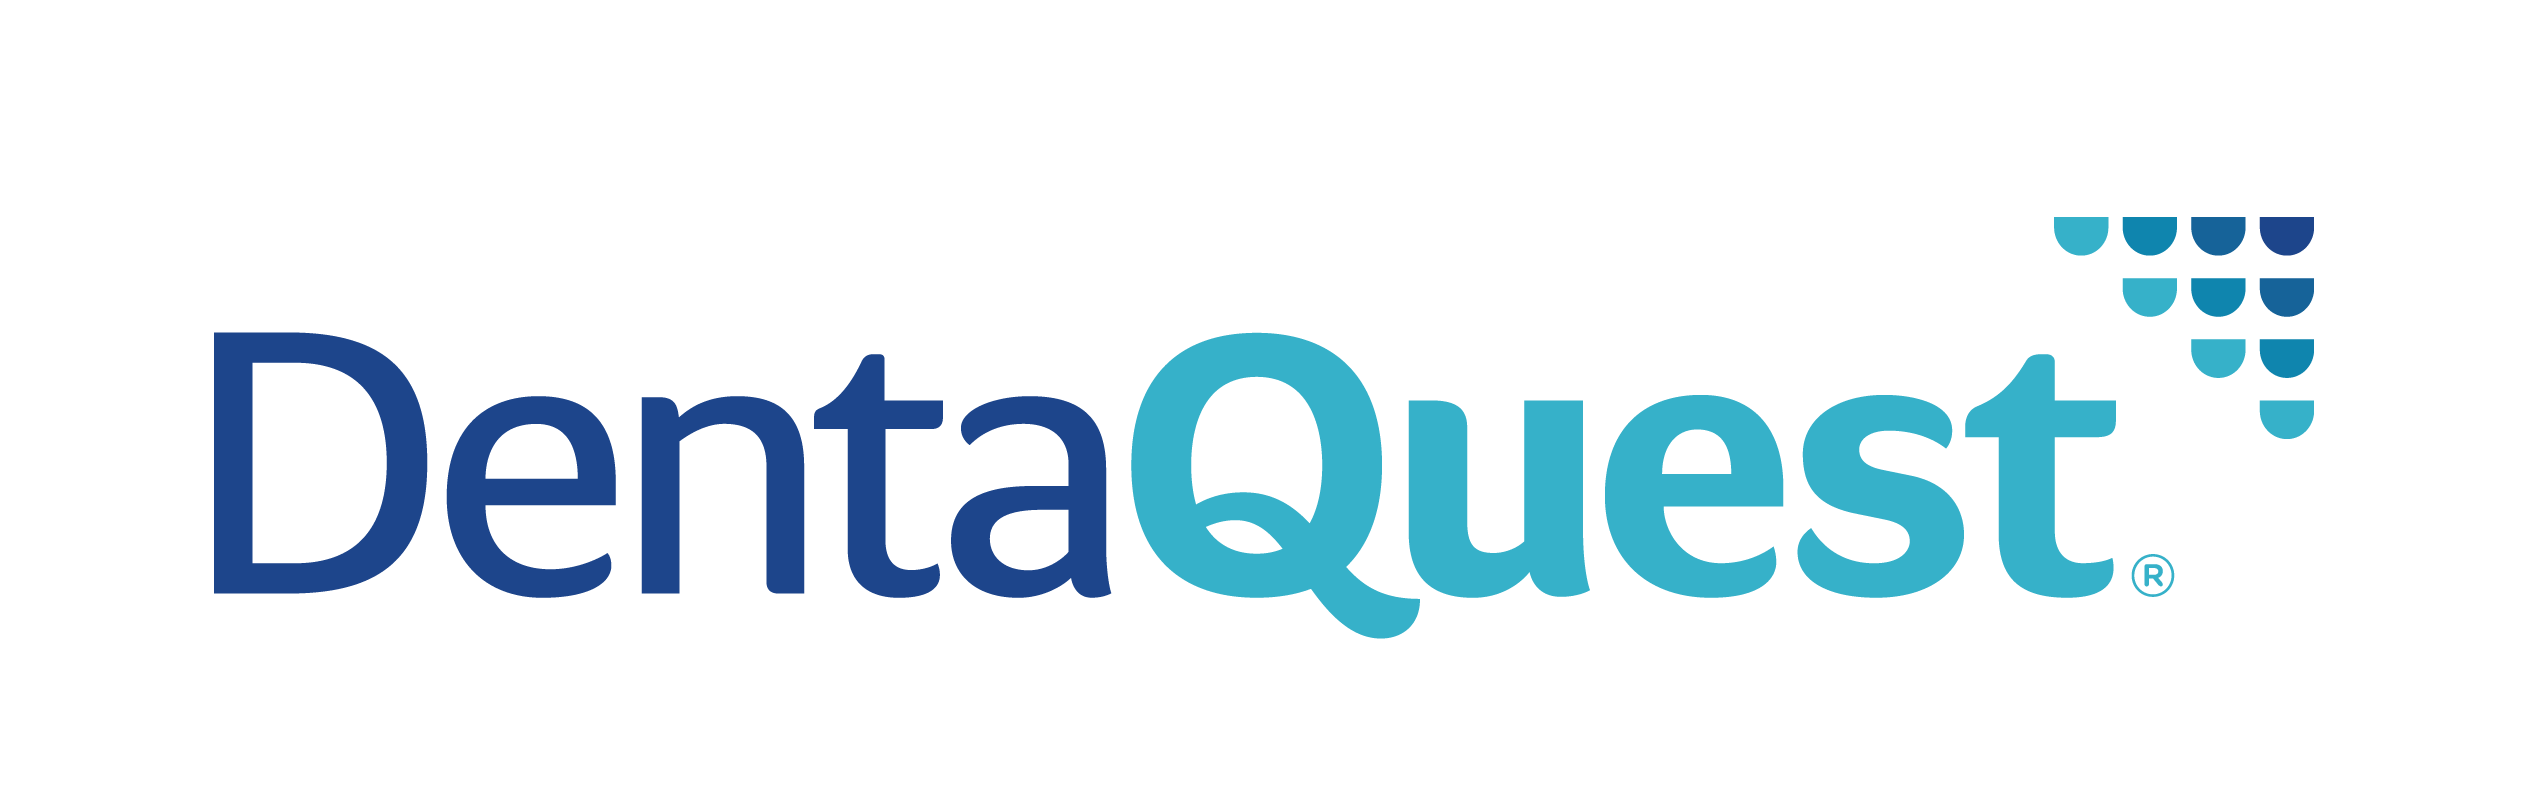 DentaQuest_logo_digital